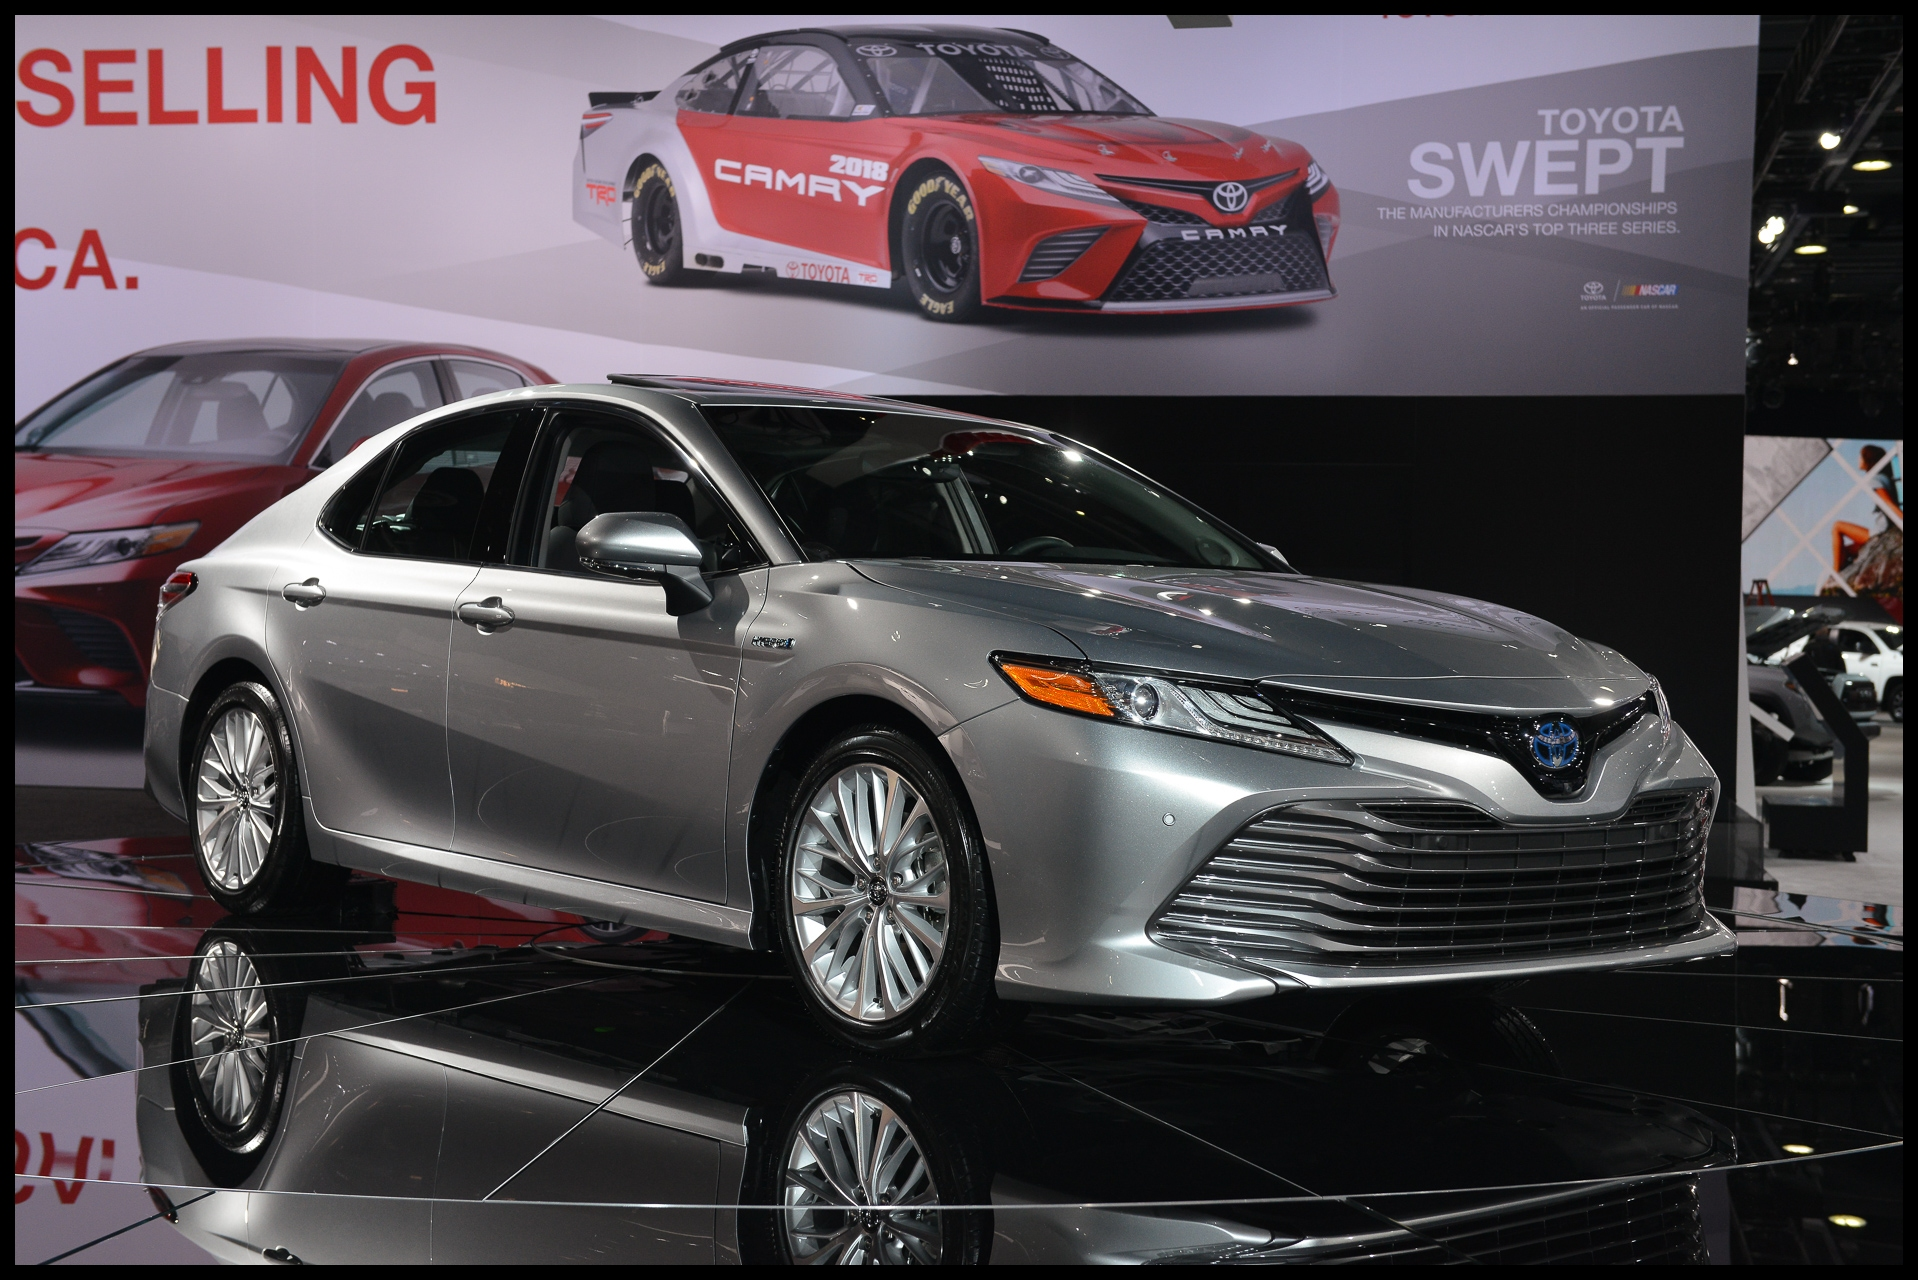 2018 Toyota Camry Hybrid two different battery packs best in class fuel economy claimed